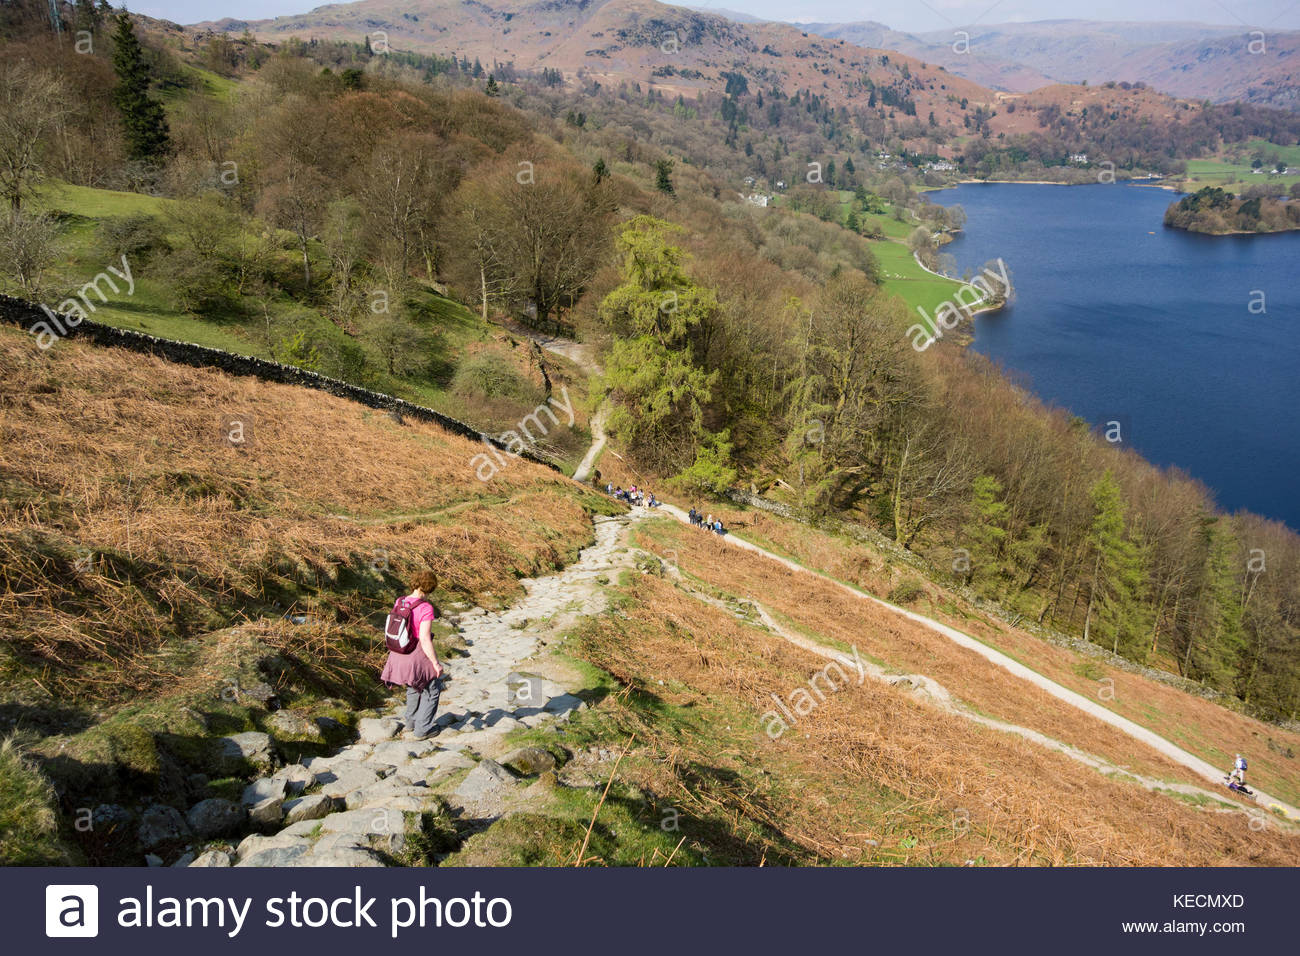 Descending on a steep, stony track off Loughrigg towards Rydal Water near Ambleside in the English Lake District - Stock Image